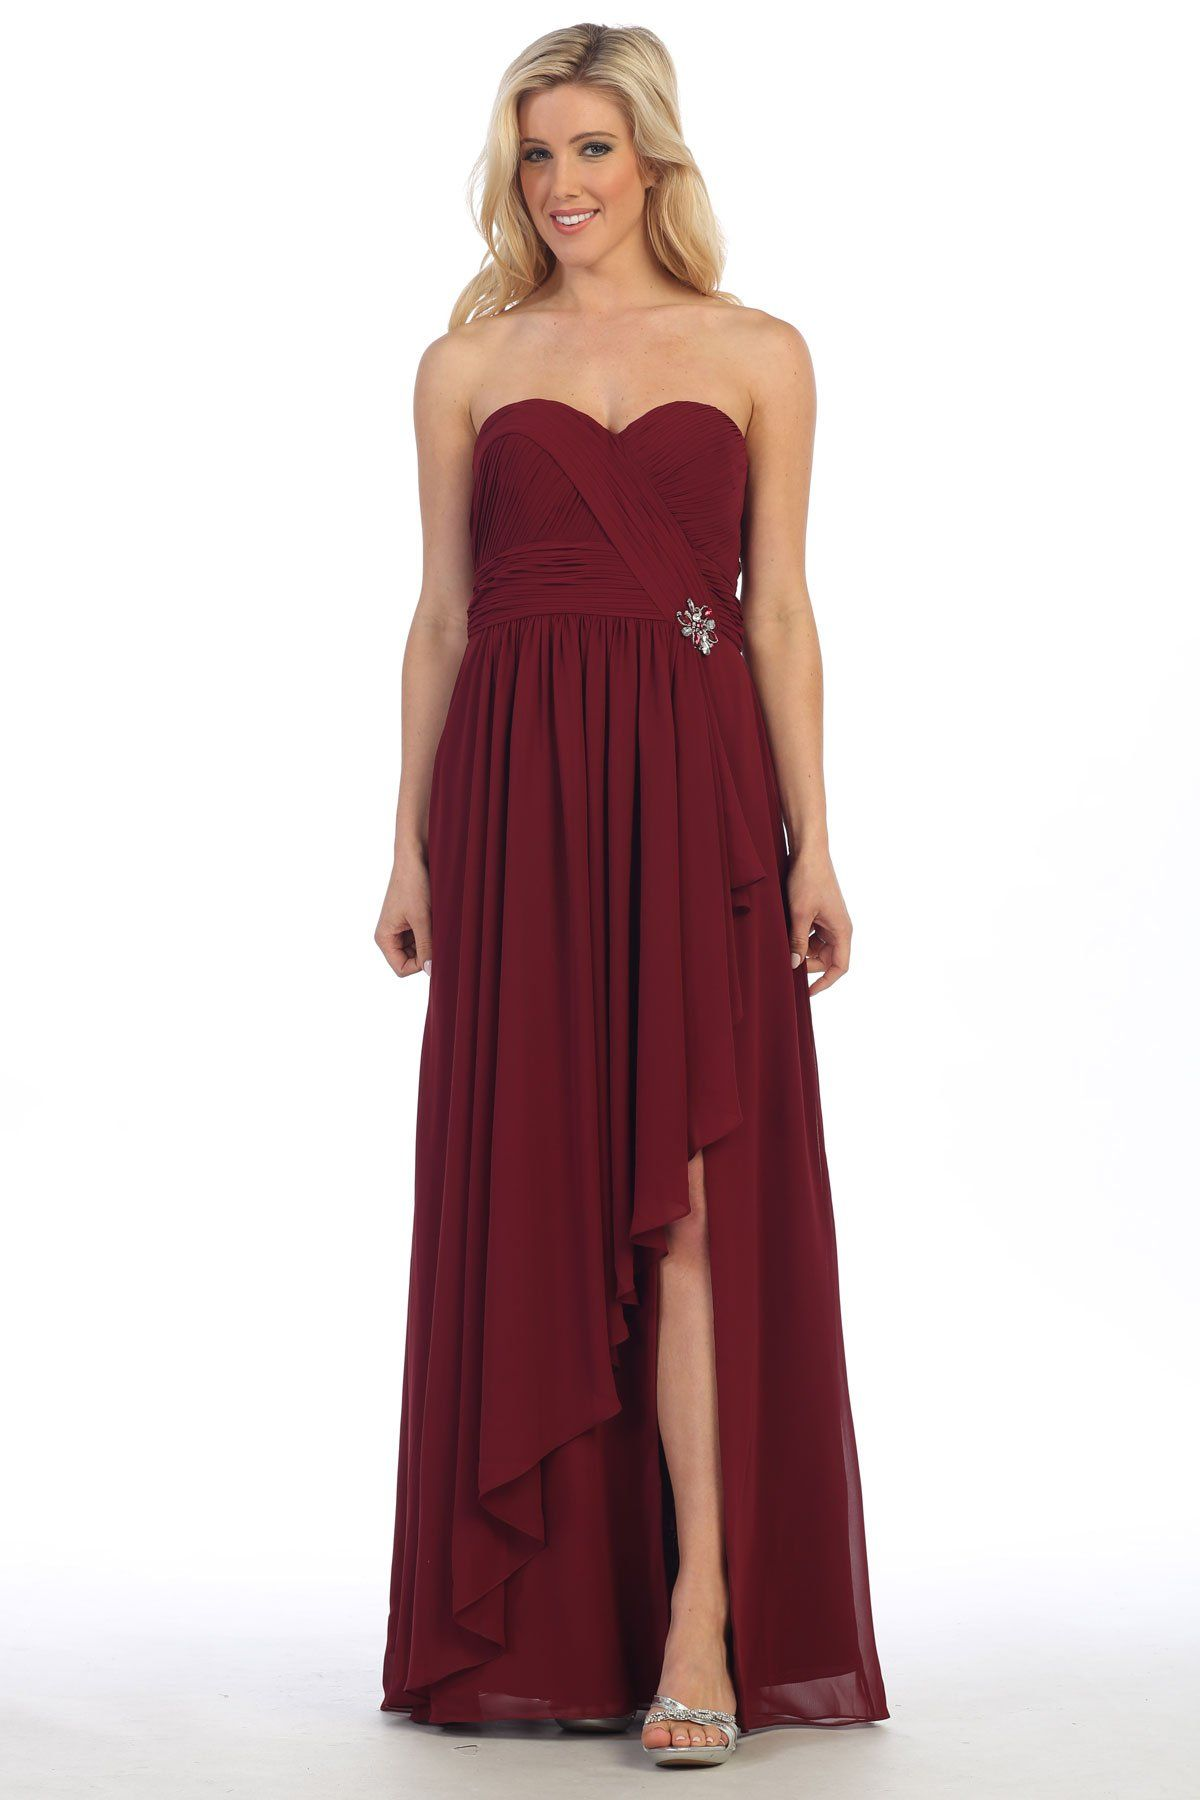 Strapless prom dress cl strapless prom dresses prom and bodice